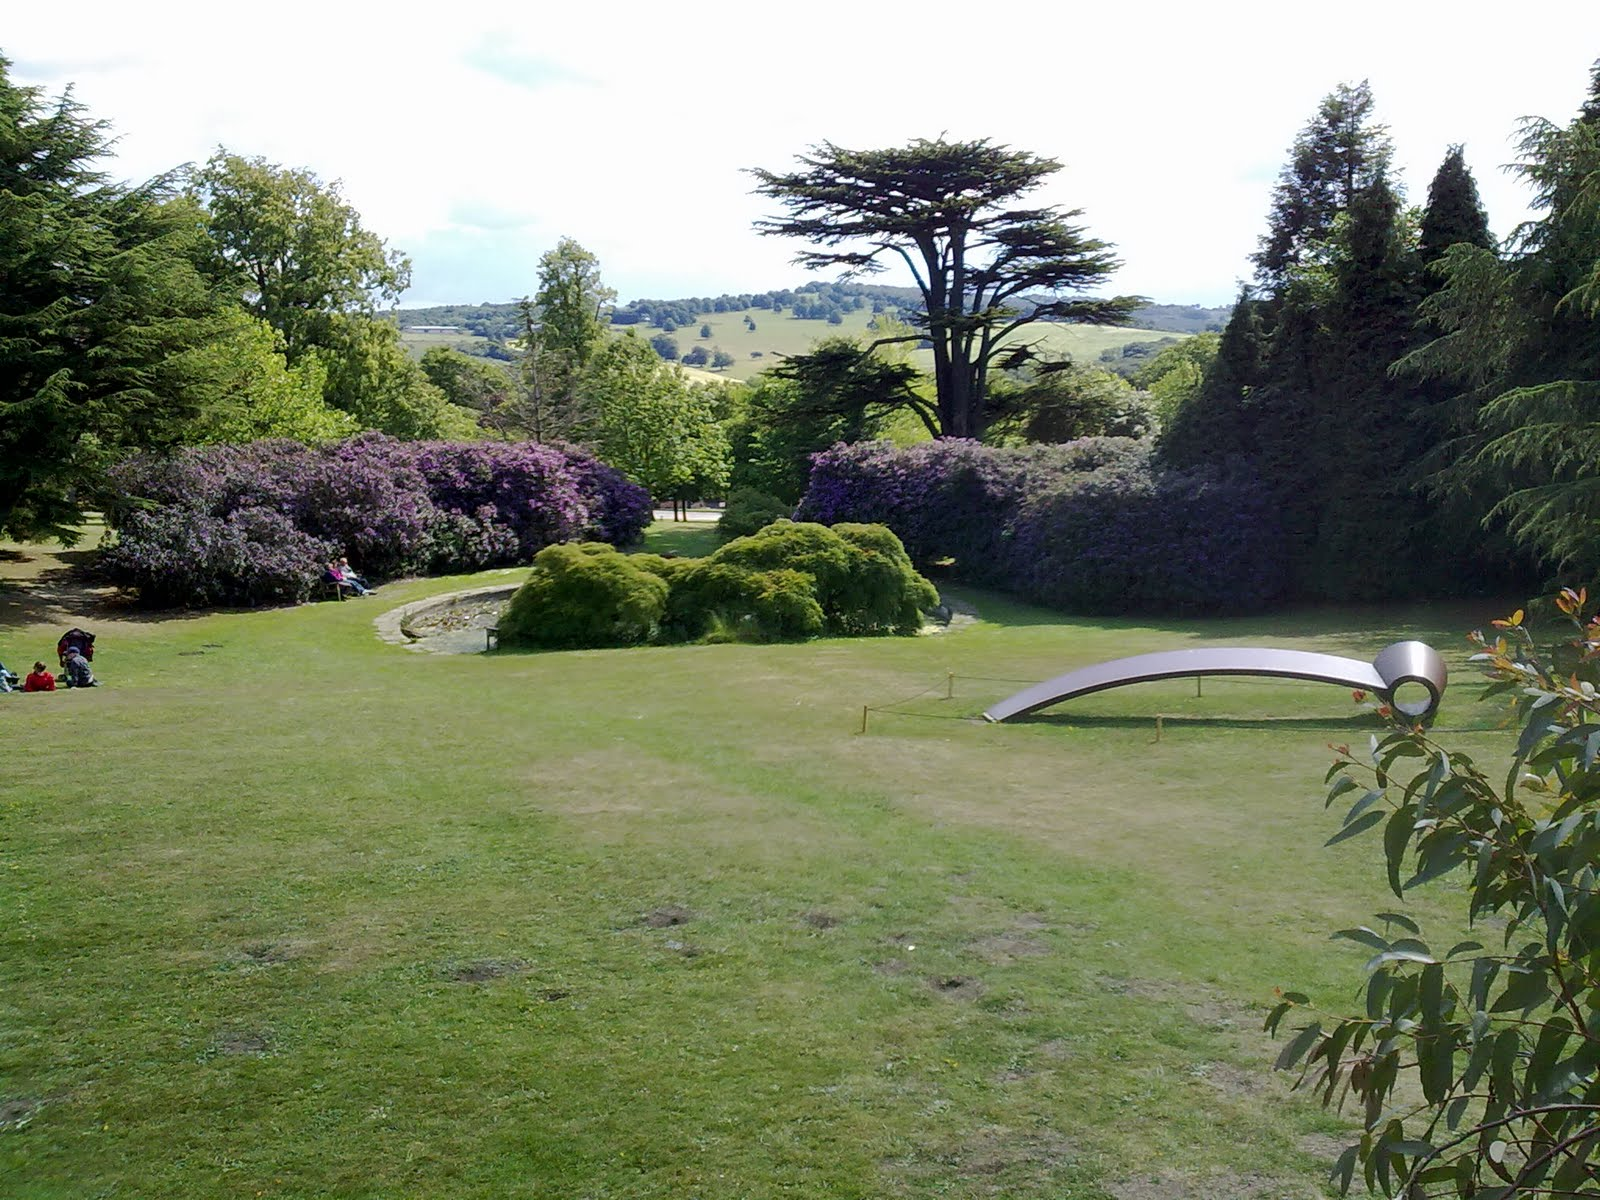 Personable Dan Community Ltd June  With Marvelous On Saturday  June We Visited The Newly Opened Hepworth Art Gallery In  Wakefield And The Yorkshire Sculpture Park With Enchanting How To Garden Flowers For Beginners Also In The Nigth Garden In Addition Small Back Garden Designs And Island Garden Of Mainau As Well As Garden Railway Specialists Princes Risborough Additionally Worthing Dentist Liverpool Gardens From Danartscouk With   Marvelous Dan Community Ltd June  With Enchanting On Saturday  June We Visited The Newly Opened Hepworth Art Gallery In  Wakefield And The Yorkshire Sculpture Park And Personable How To Garden Flowers For Beginners Also In The Nigth Garden In Addition Small Back Garden Designs From Danartscouk